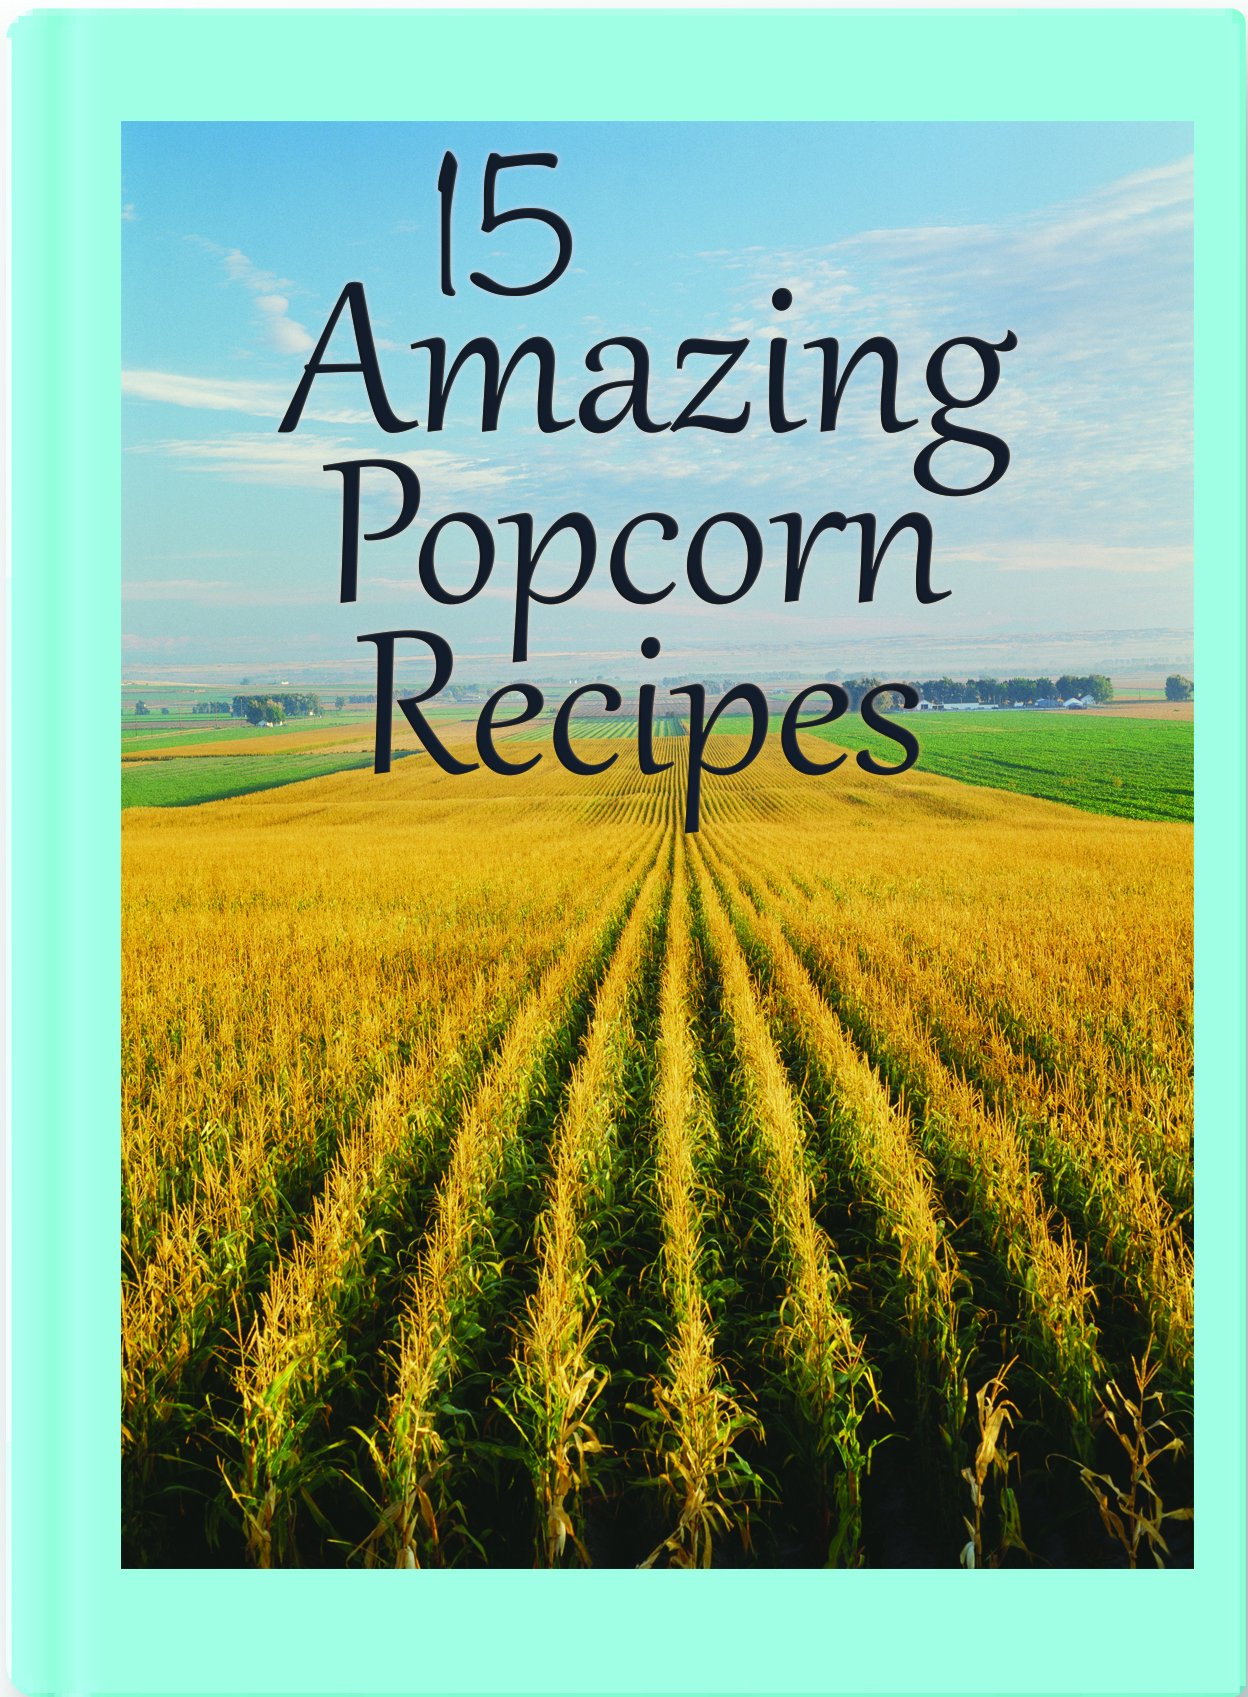 Amish Country Popcorn - 2 Lb Burlap Sack of Old Fashioned, Non GMO, and Gluten Free Medium White Popcorn - with Recipe Guide and 1 Year Freshness Guarantee